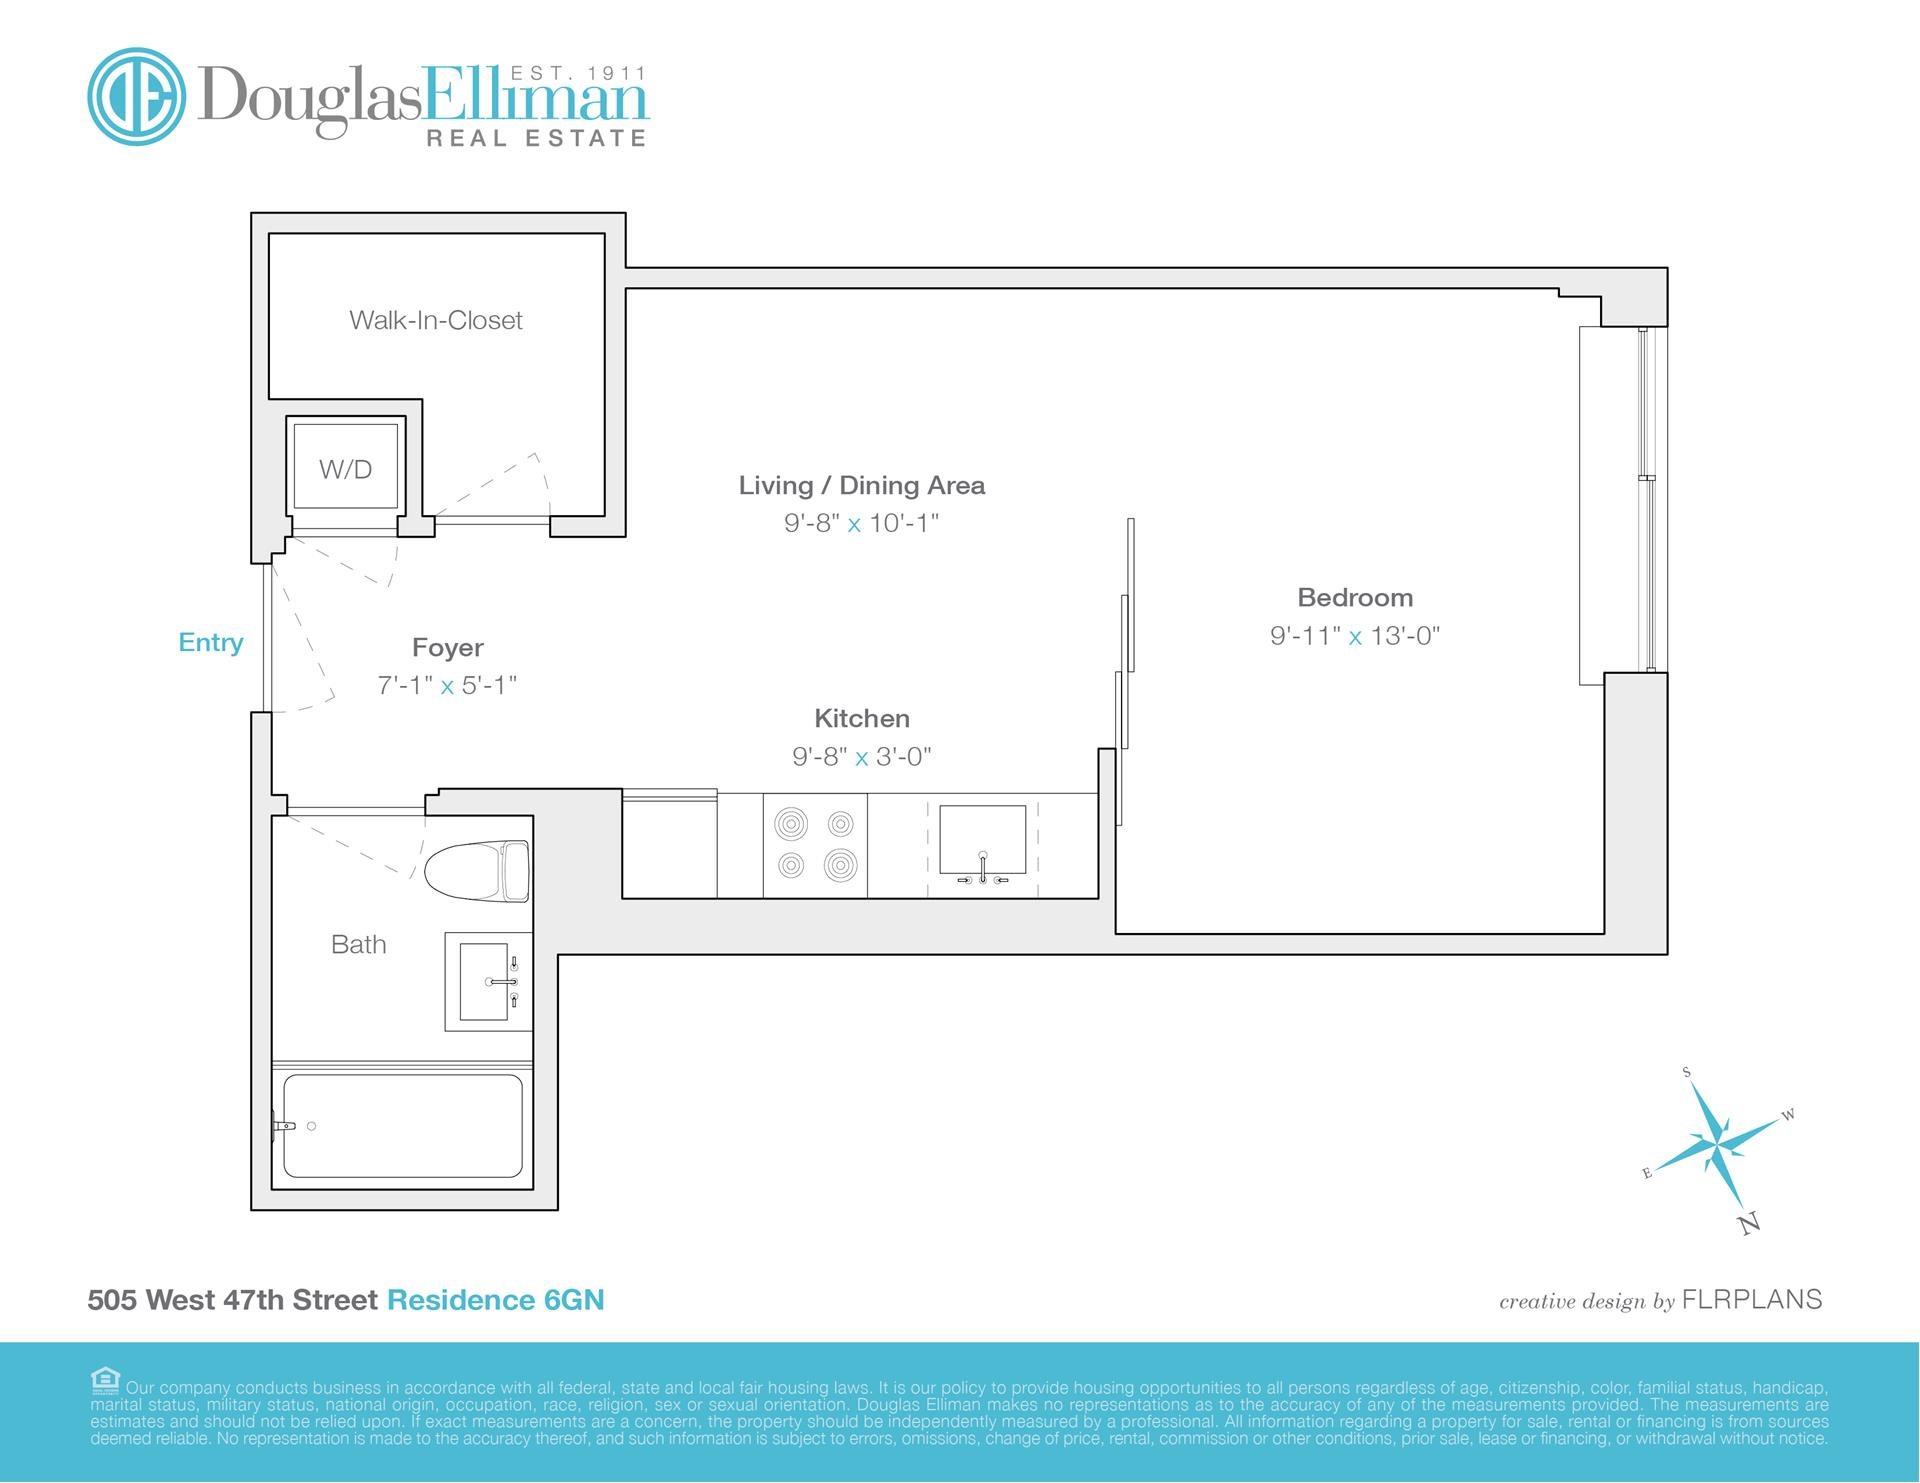 Floor plan of 505 West 47th St, 6GN - Clinton, New York